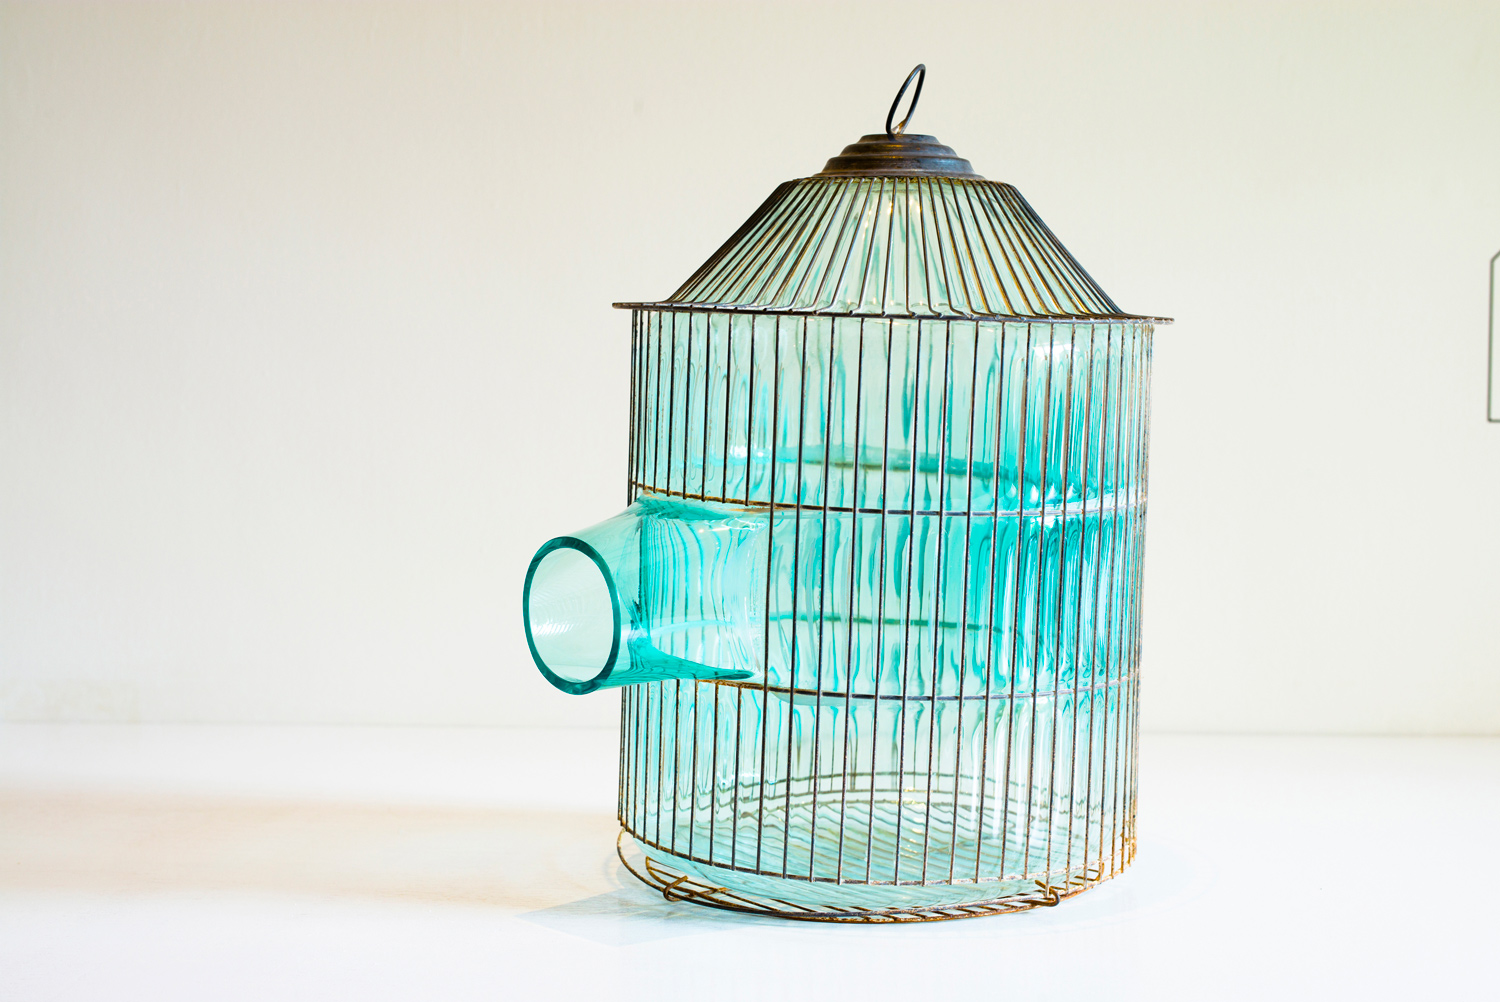 web222-turqoise-glass-cage-gala-fernandez-nouvel-studio-mexico-out-of-cage-marion-friedmann-gallery-felix-friedmannPhotography.jpg